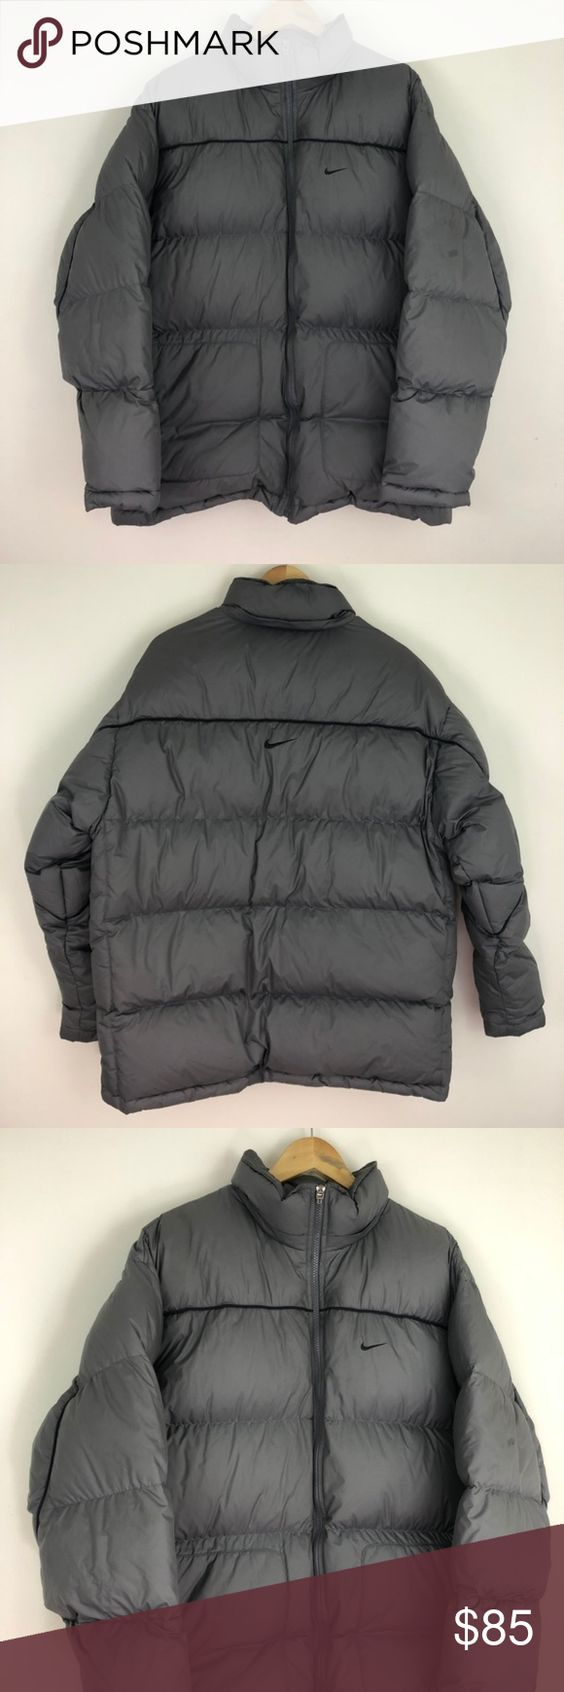 Vintage 90s Nike Puffer Jacket Great Condition Fire W Cargos Or Blue Jeans If You Re Looking For Vintage Heat Check My Pa Vintage Nike Jackets Puffer Jackets [ 1692 x 564 Pixel ]